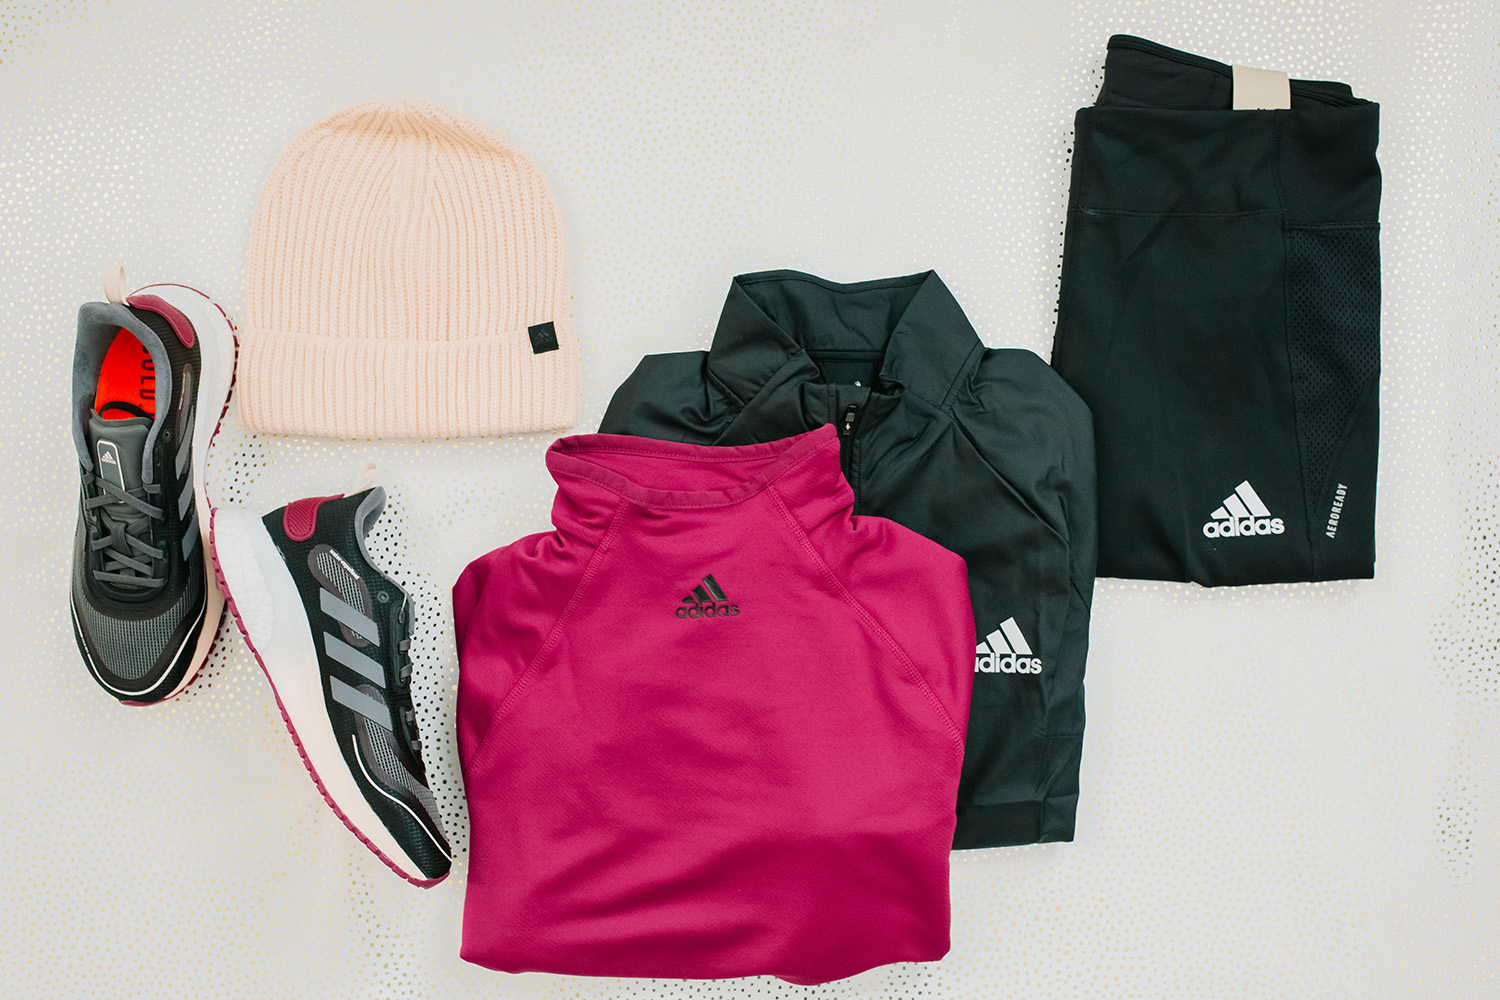 adidas cold.rdy collection